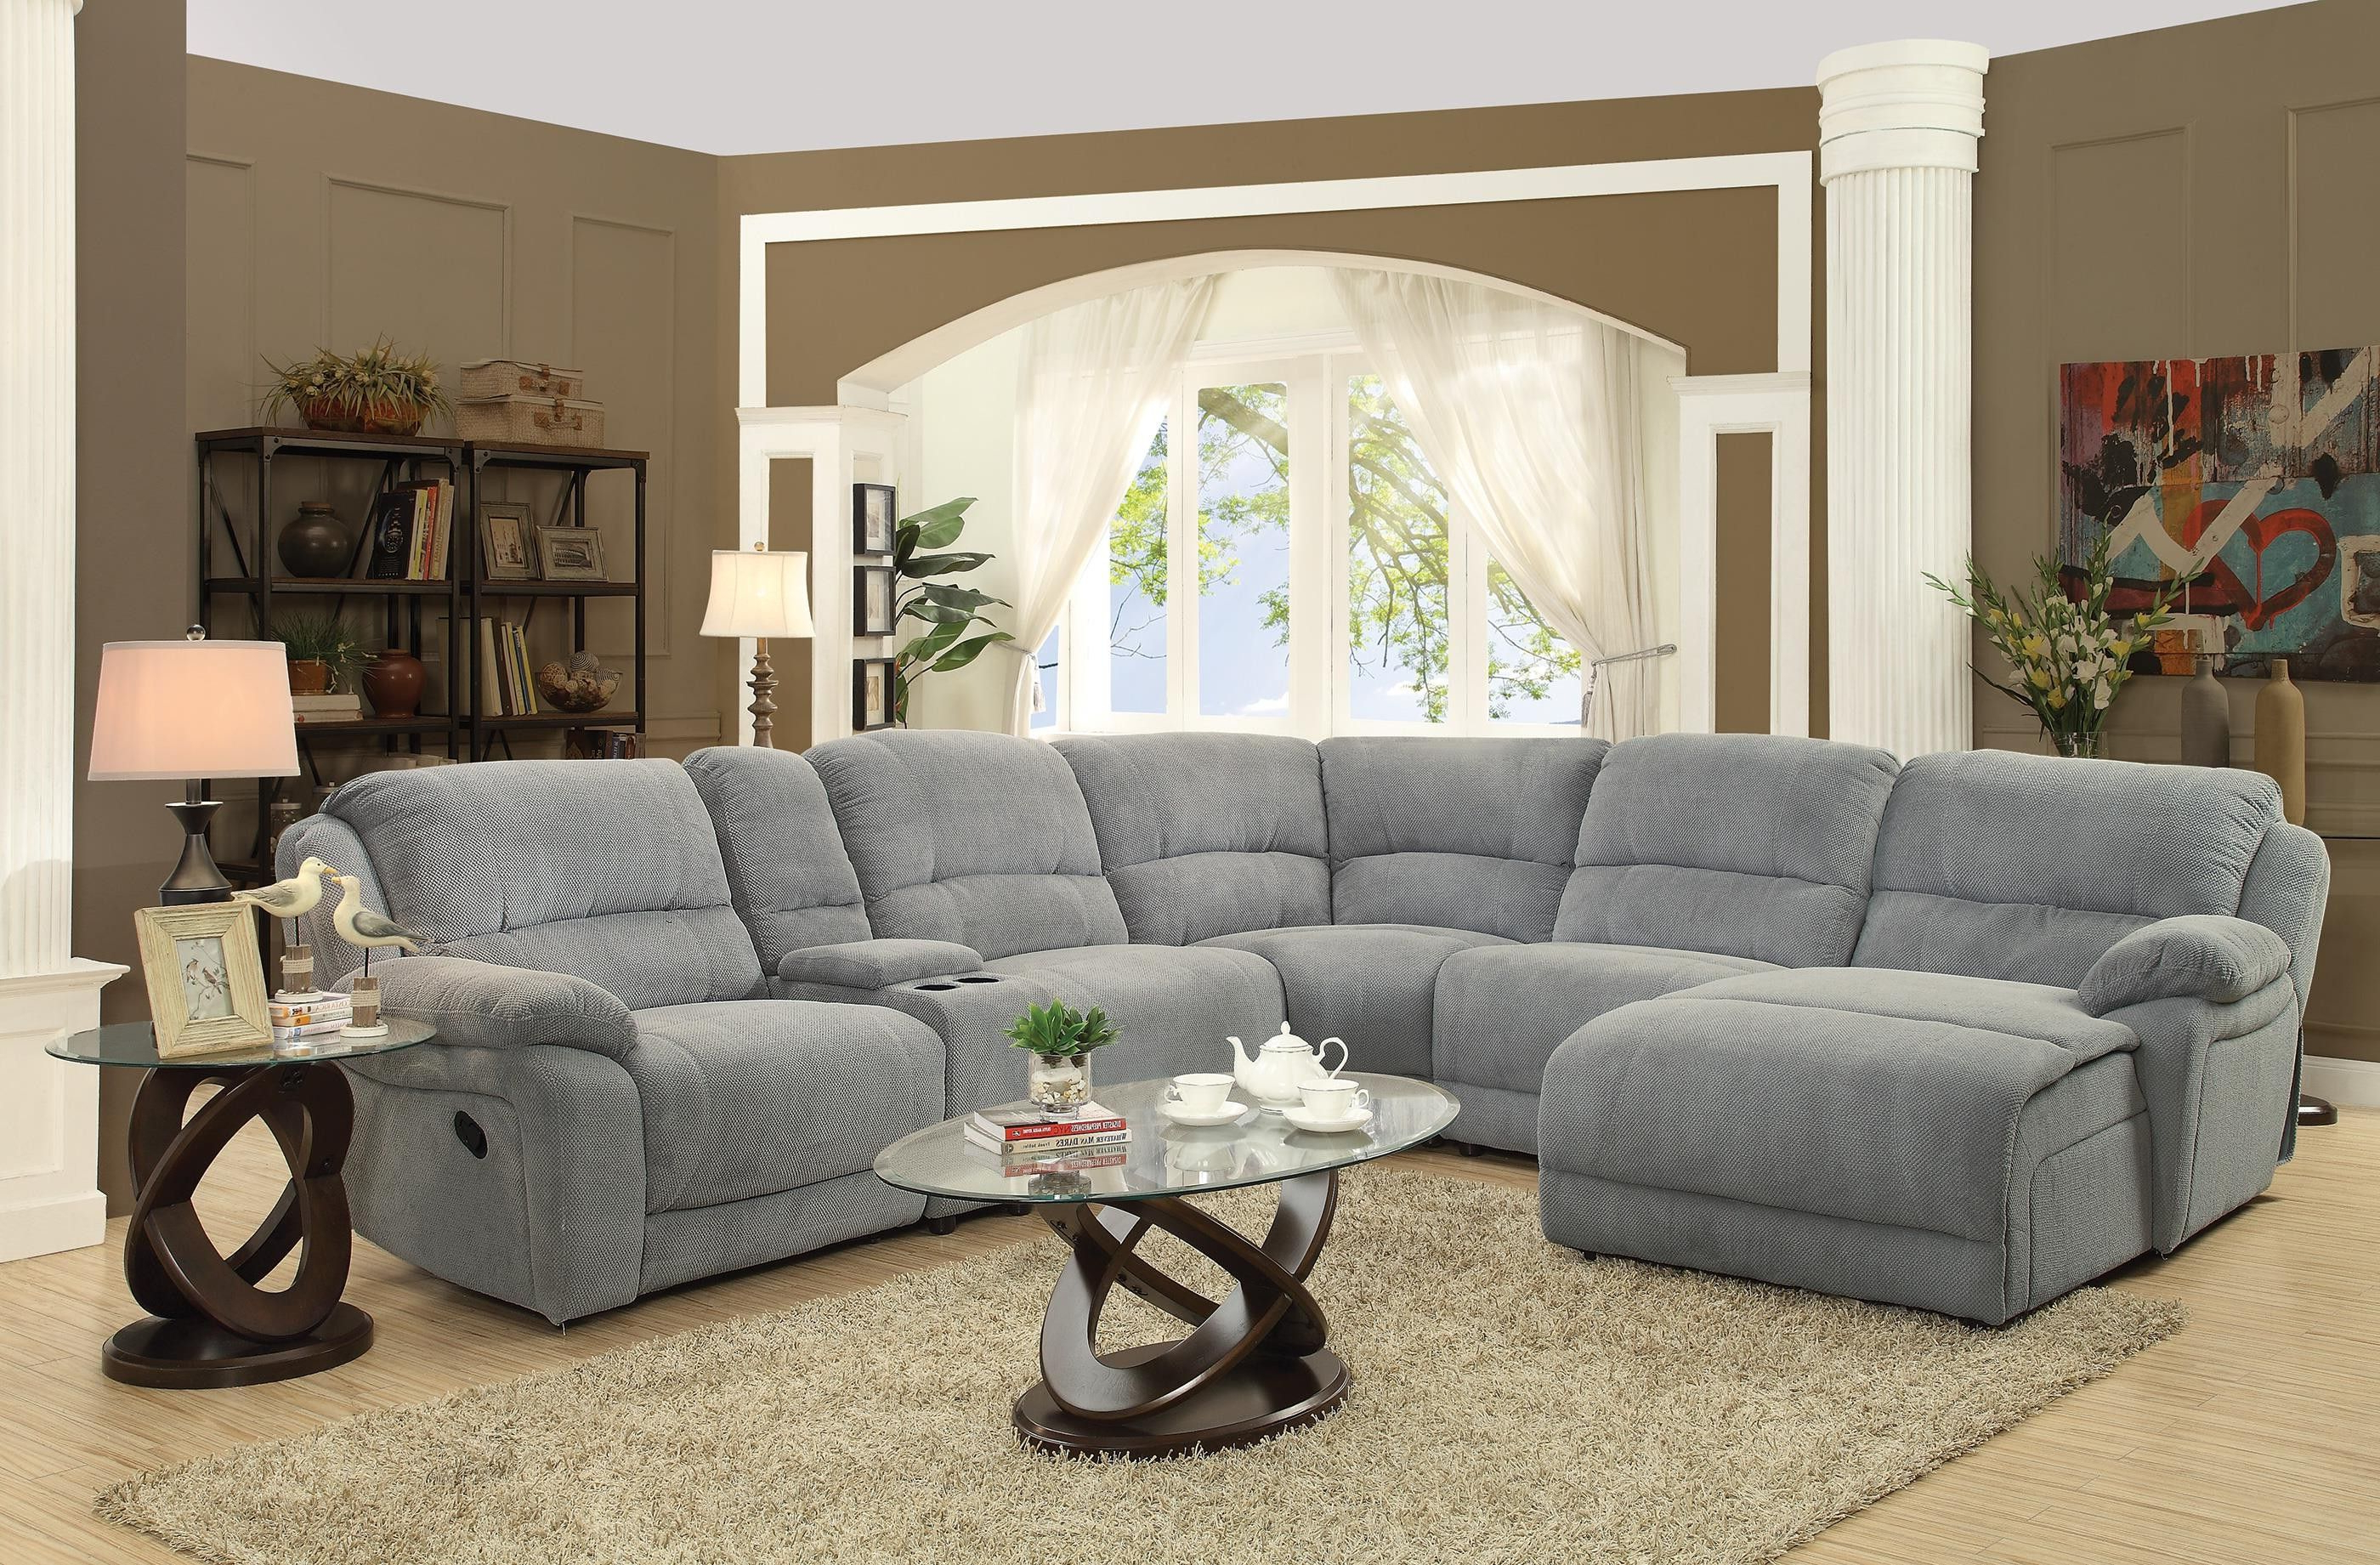 Latest 6 Piece Reclining Sectional Sofa (View 15 of 20)